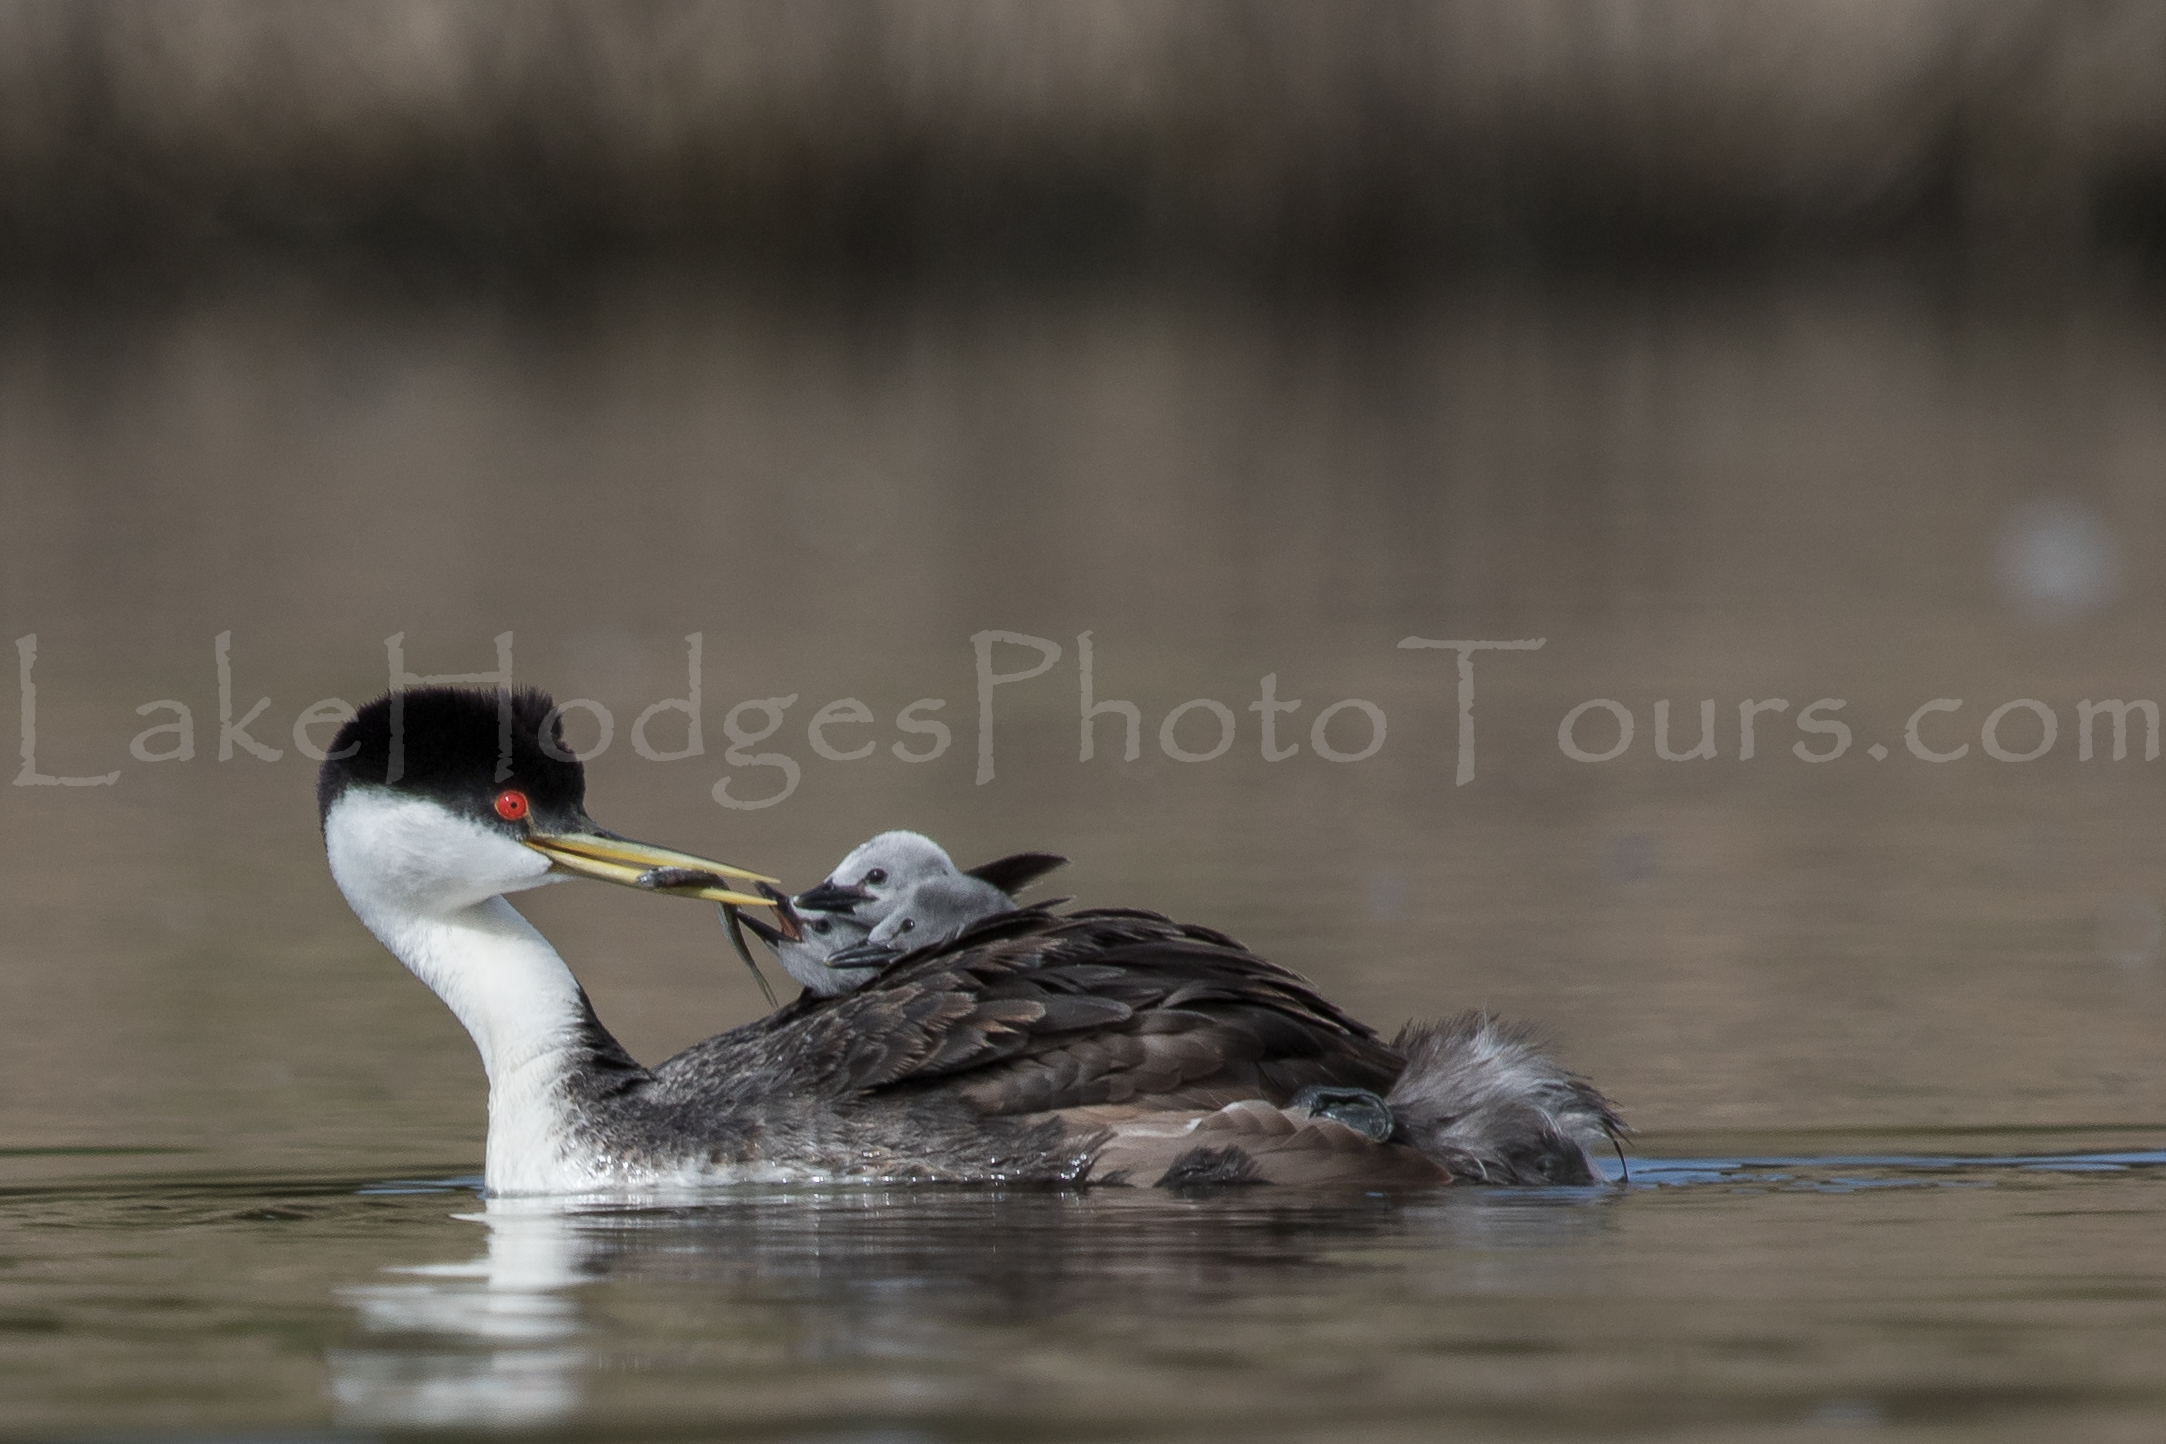 Western Grebe and chicks at Lake Hodges Photo Tours